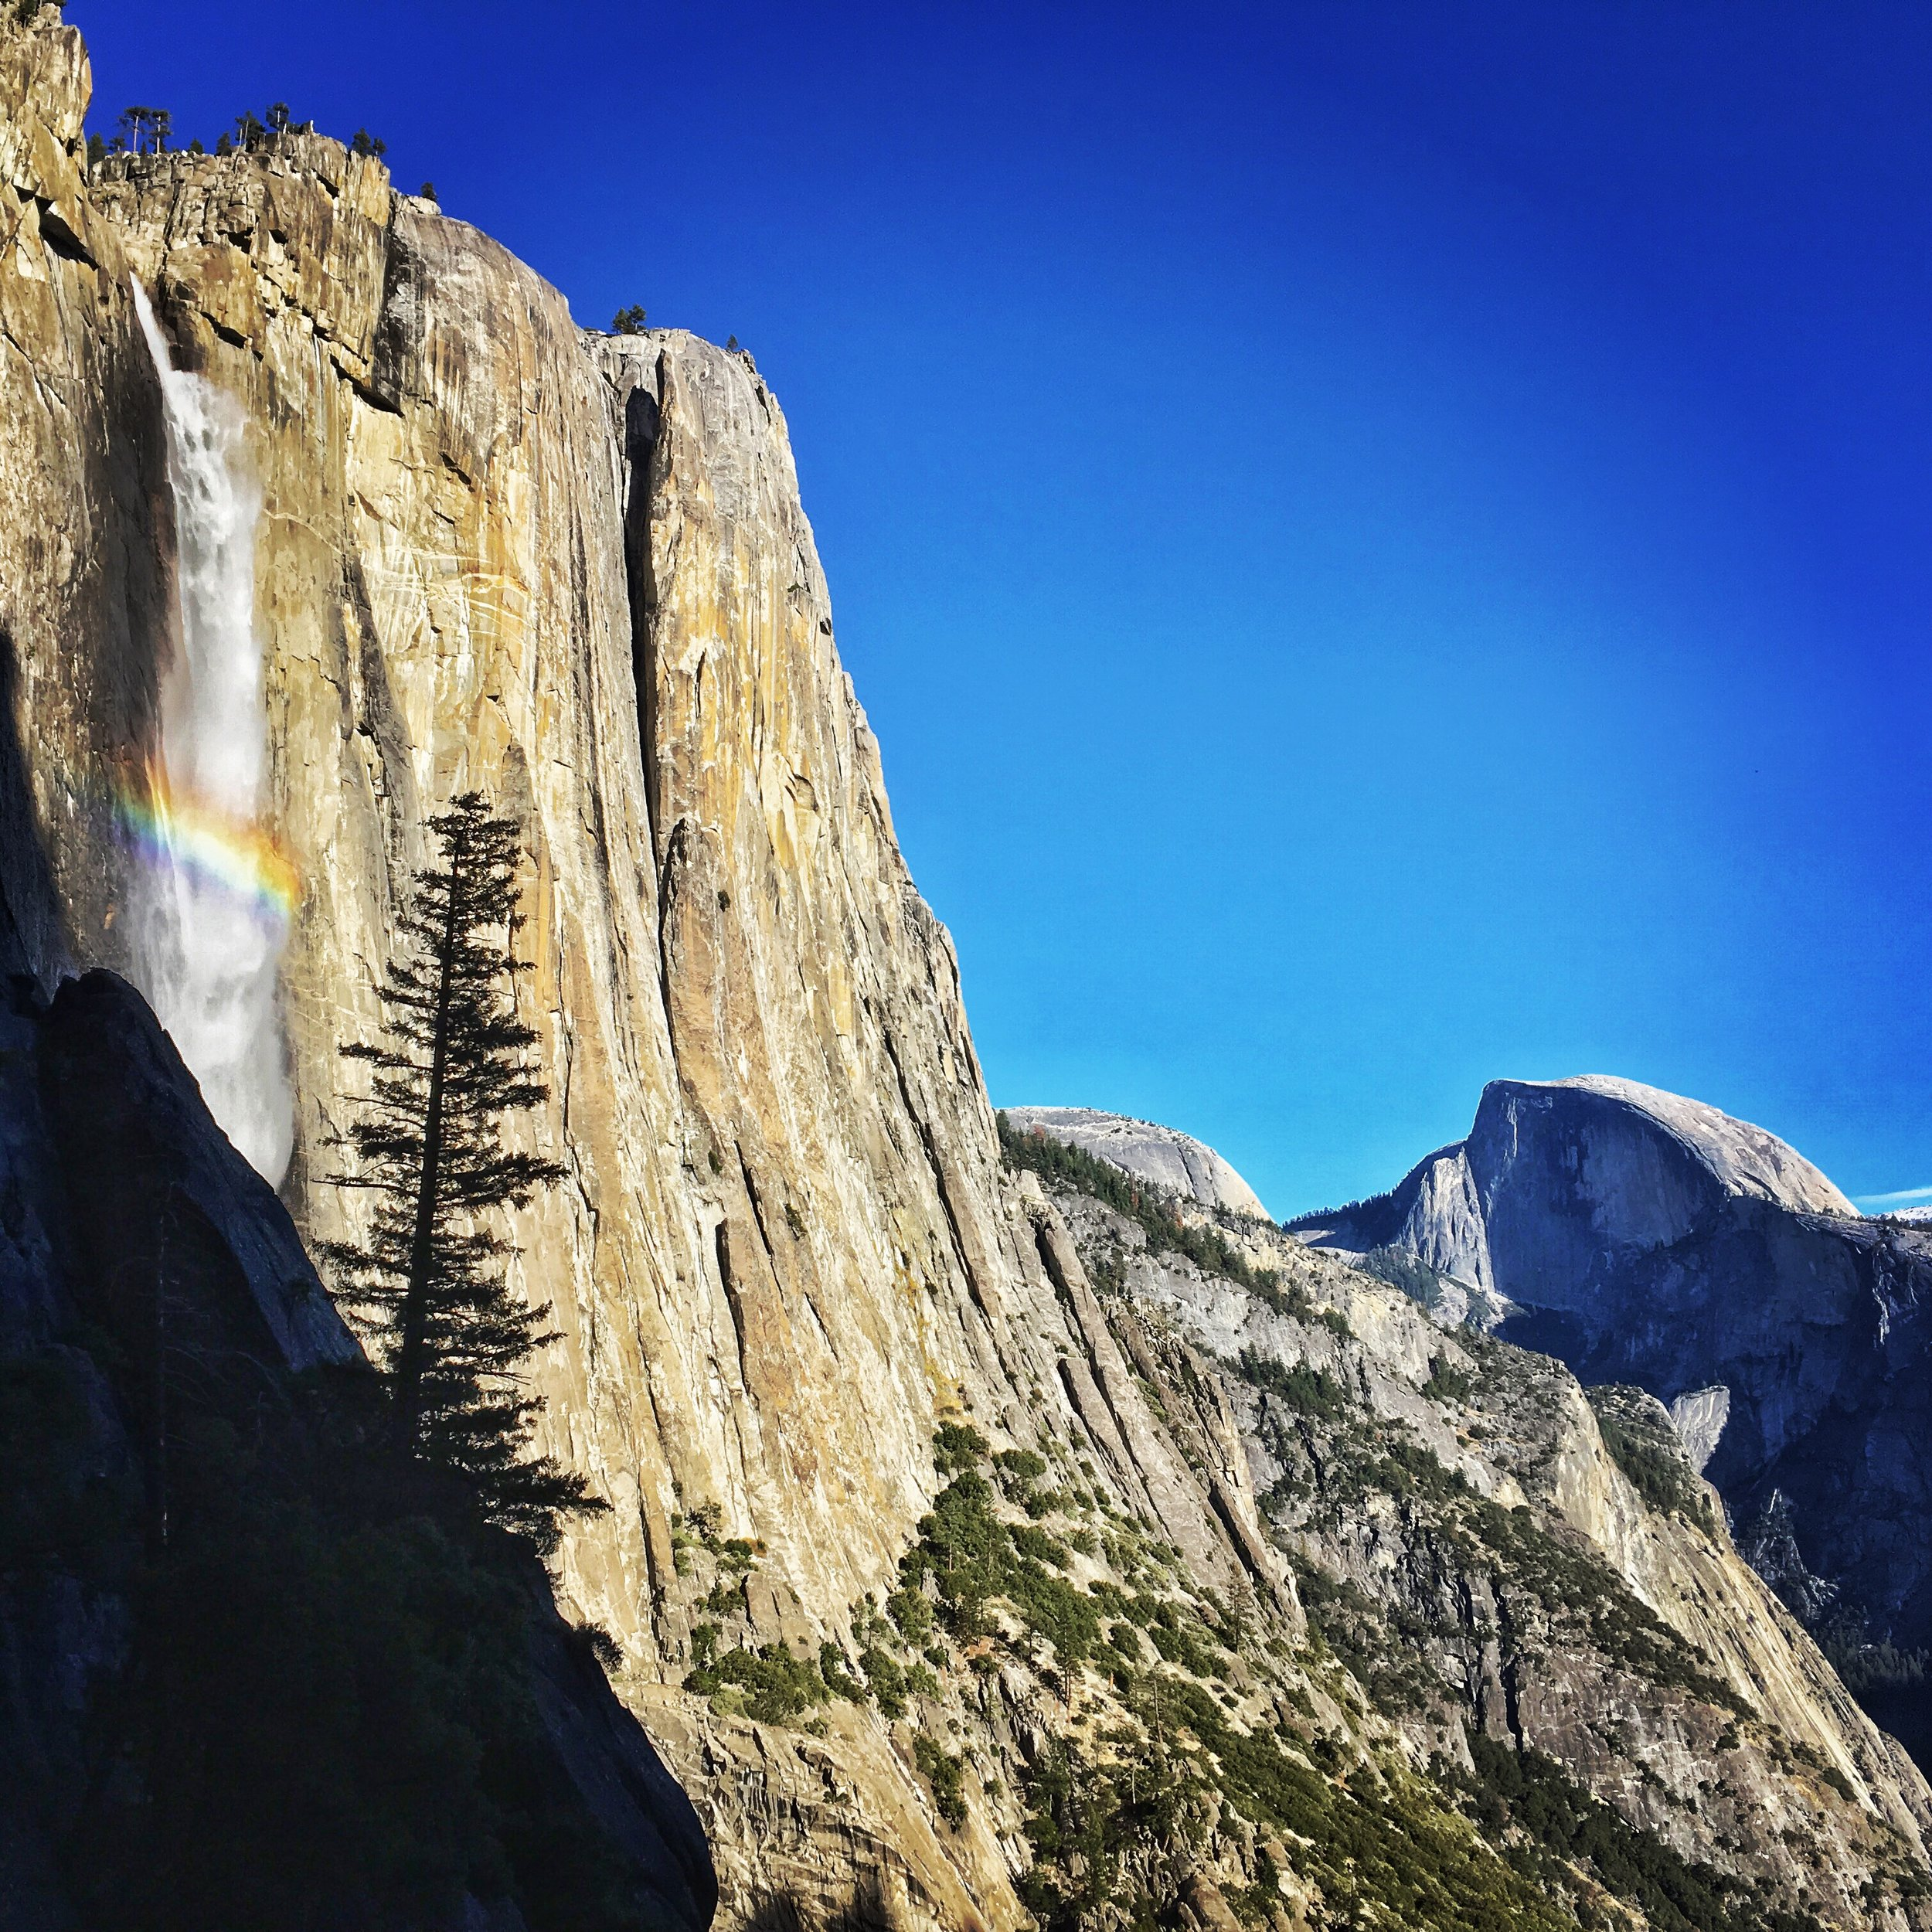 View of Yosemite Falls and Half Dome  from Lower Yosemite Falls.